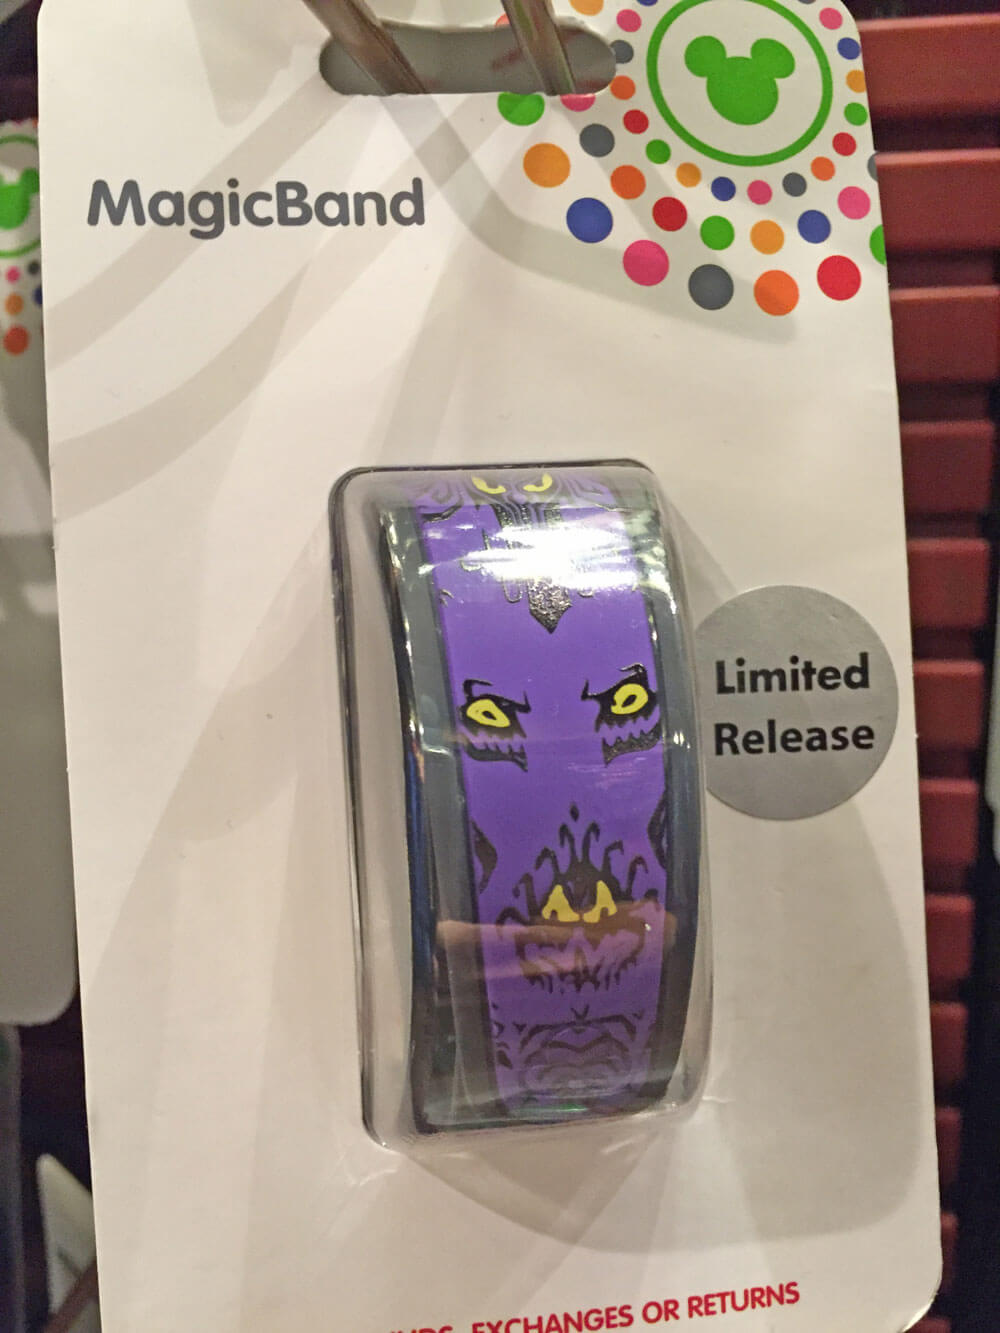 Disney MagicBand Customization Options - Limited-Edition MagicBand